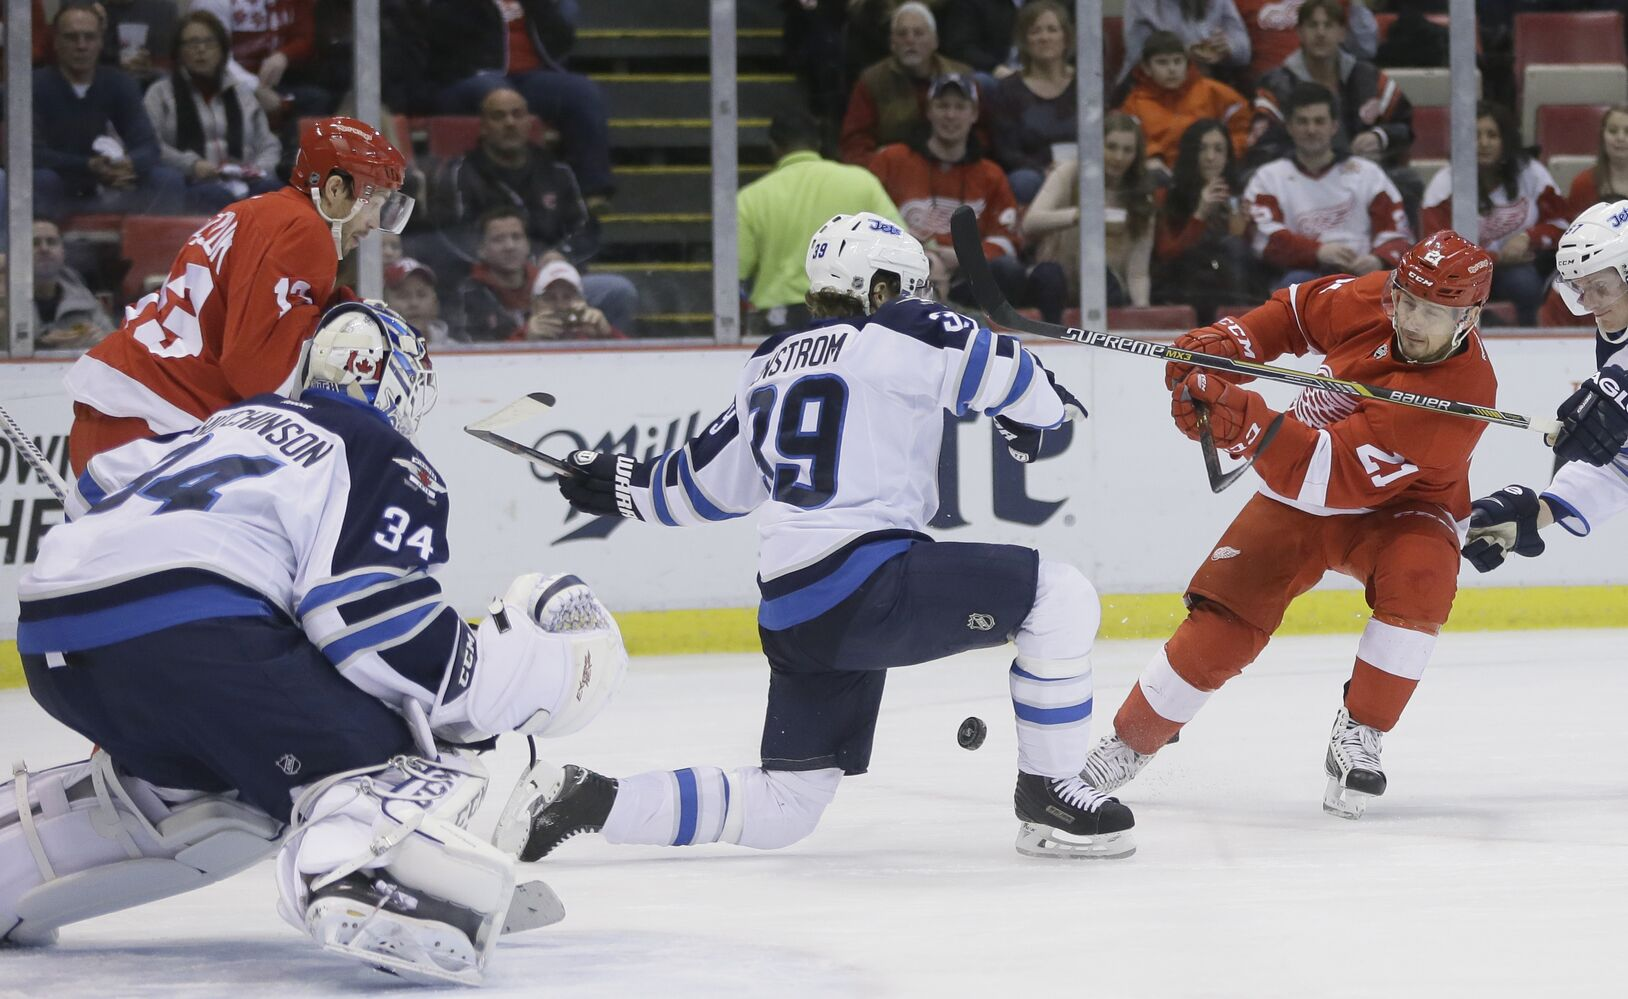 Toby Enstrom (centre) drops in front of a shot by Red Wings forward Tomas Tatar.  (Carlos Osorio / The Associated Press)